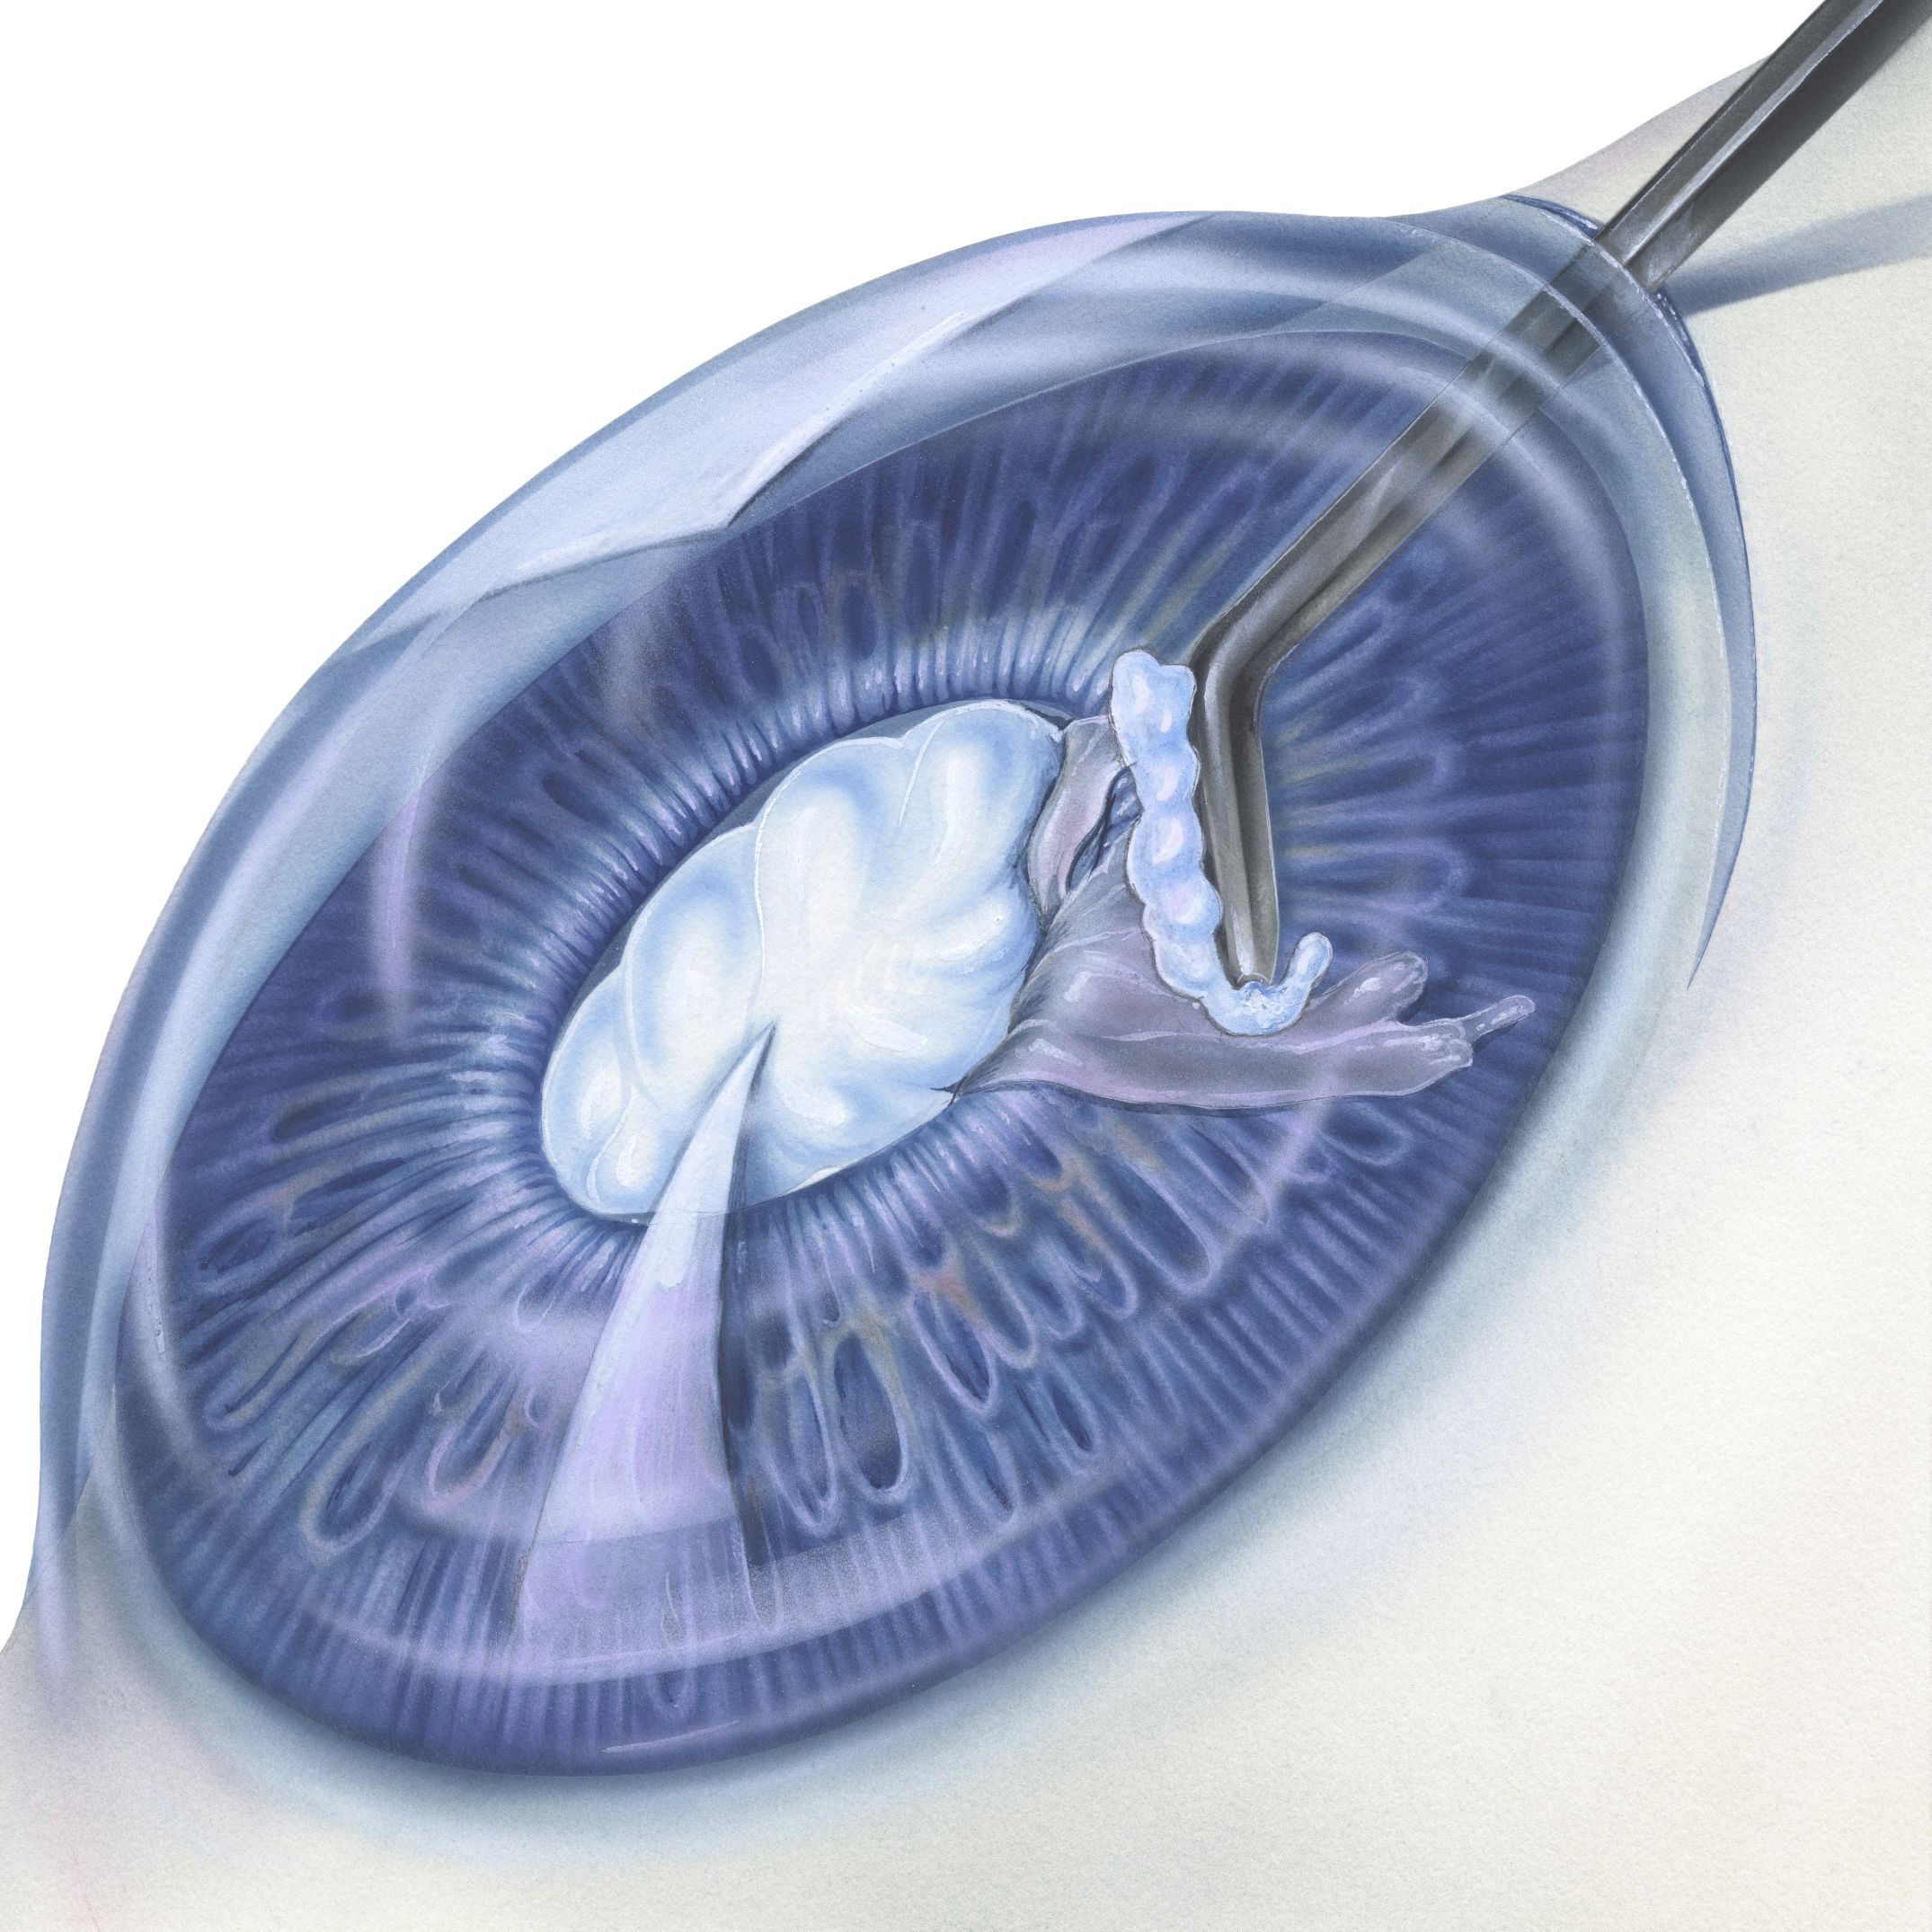 Removing a cataract